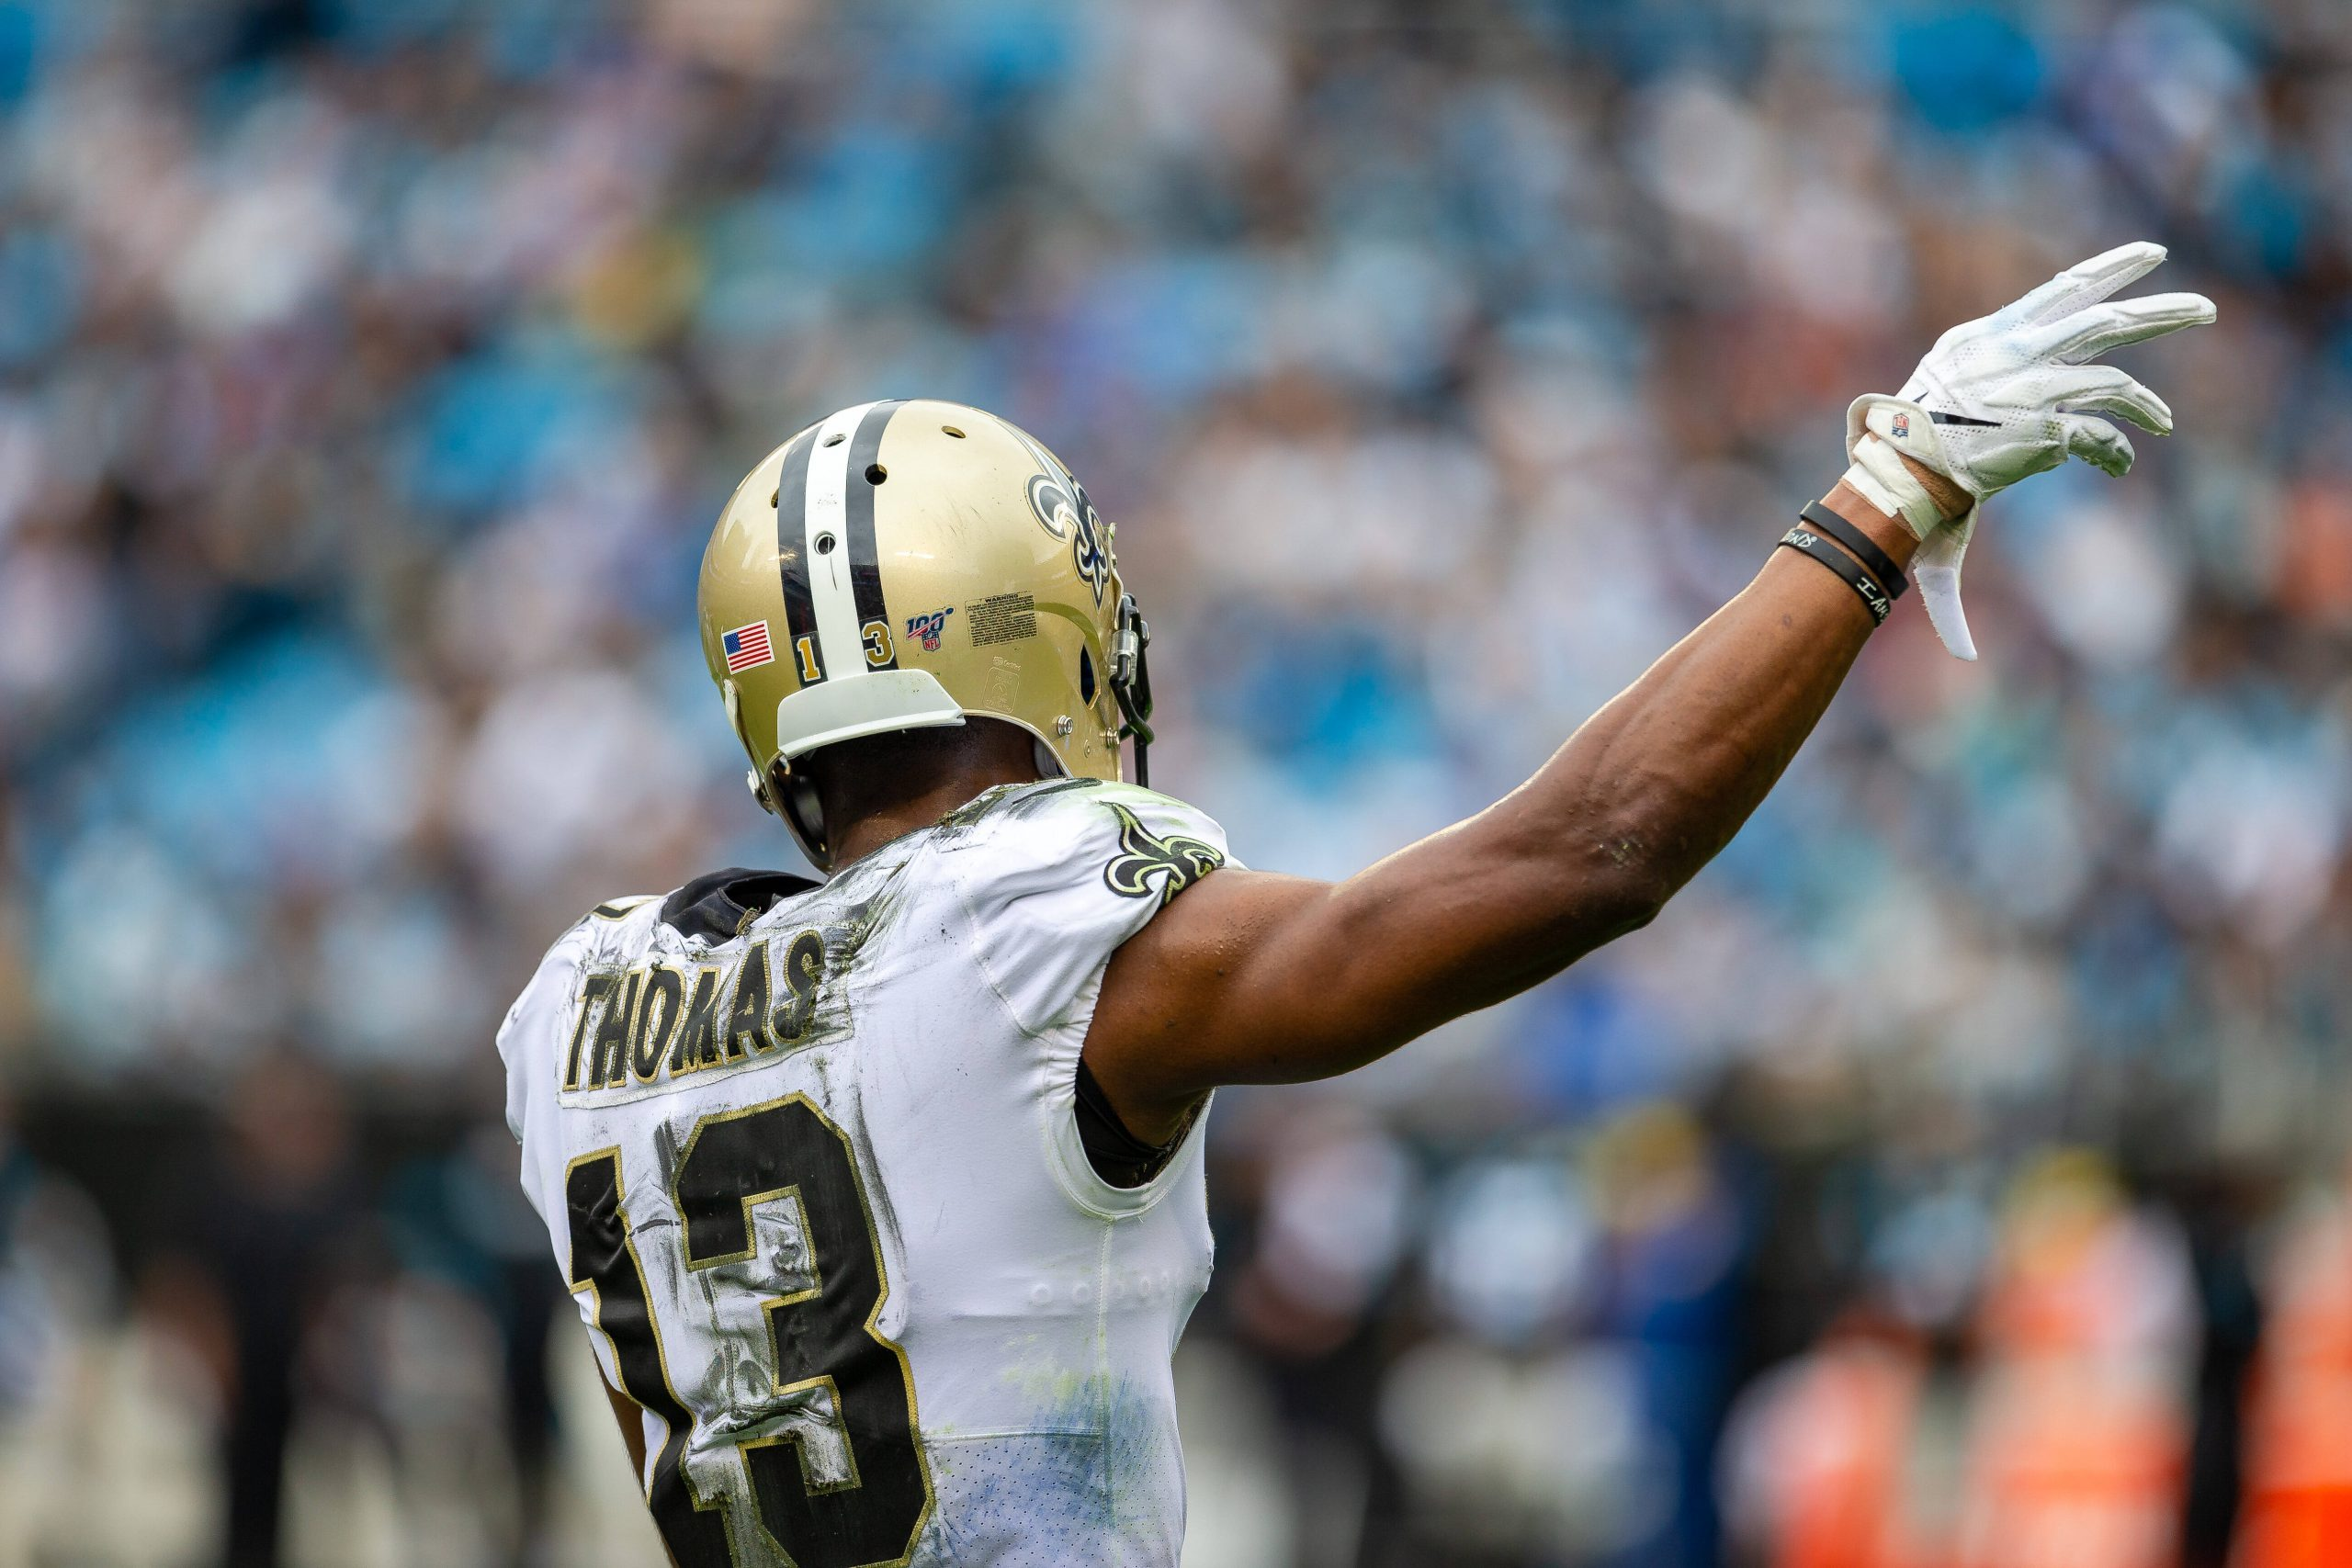 December 29, 2019: New Orleans Saints wide receiver Michael Thomas (13) signally first down after a review leads to a p